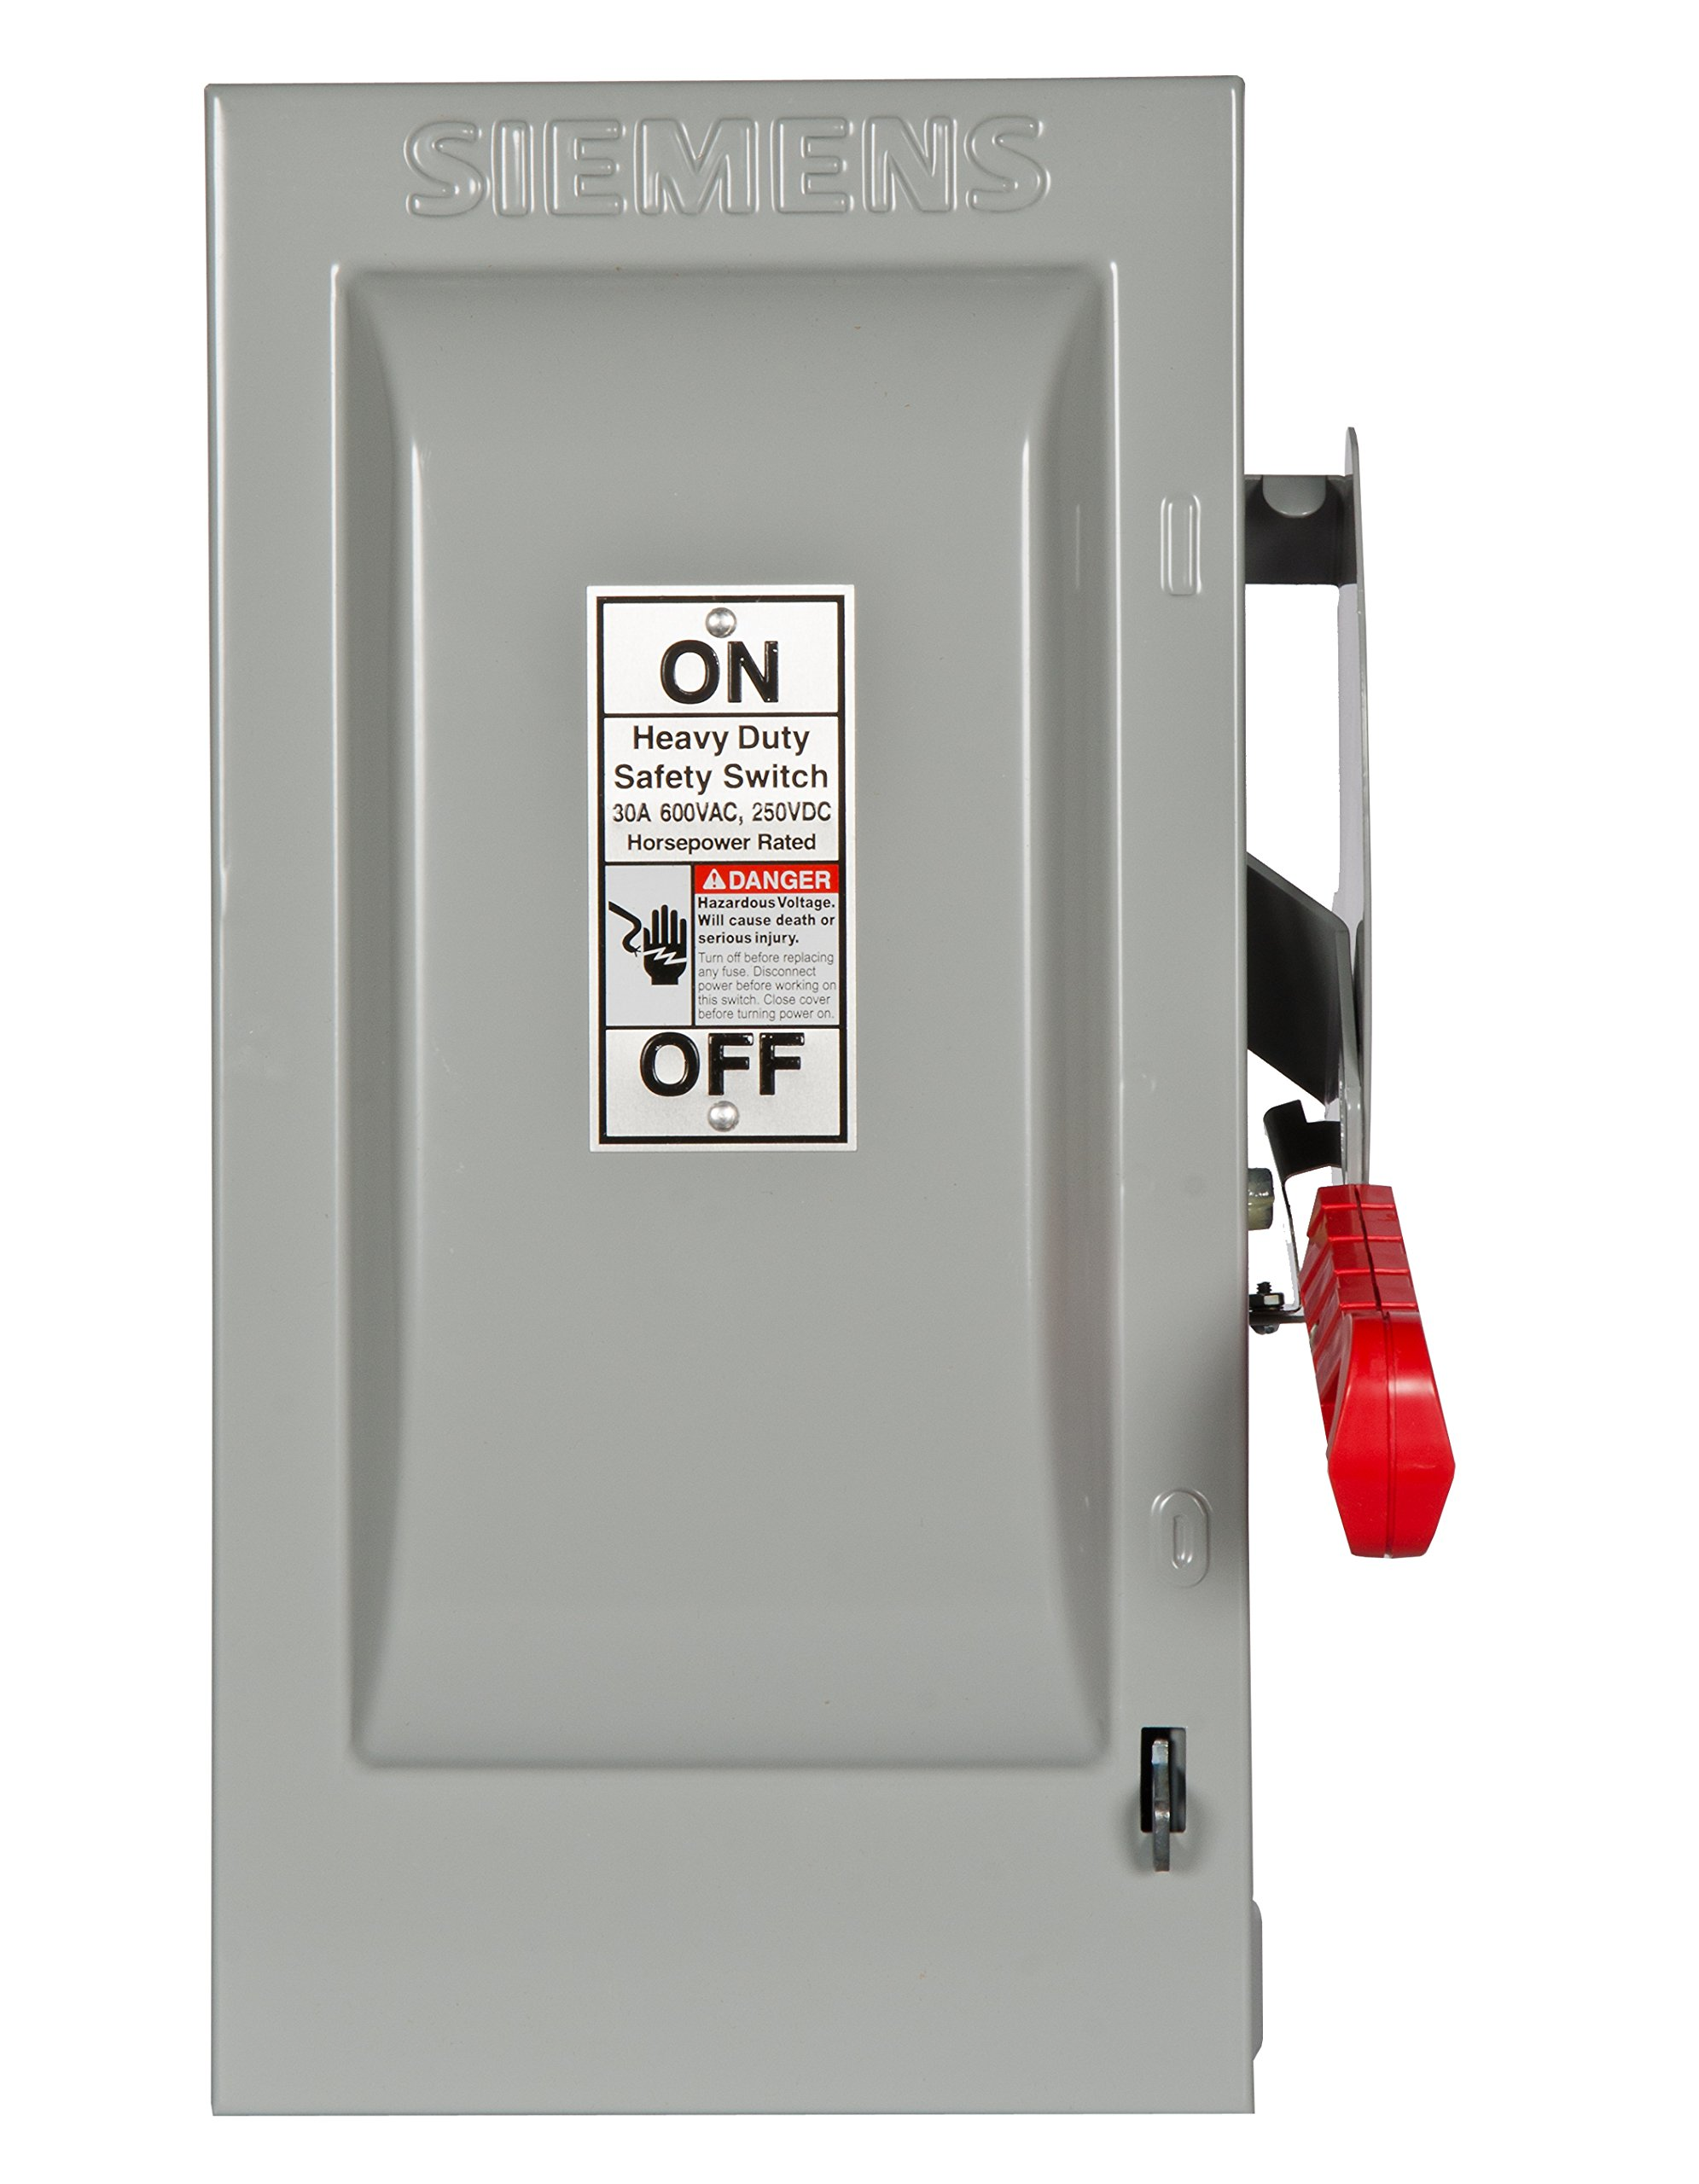 Siemens HF361 30-Amp 3 Pole 600-volt 3 Wire Fused Heavy Duty Safety Switches